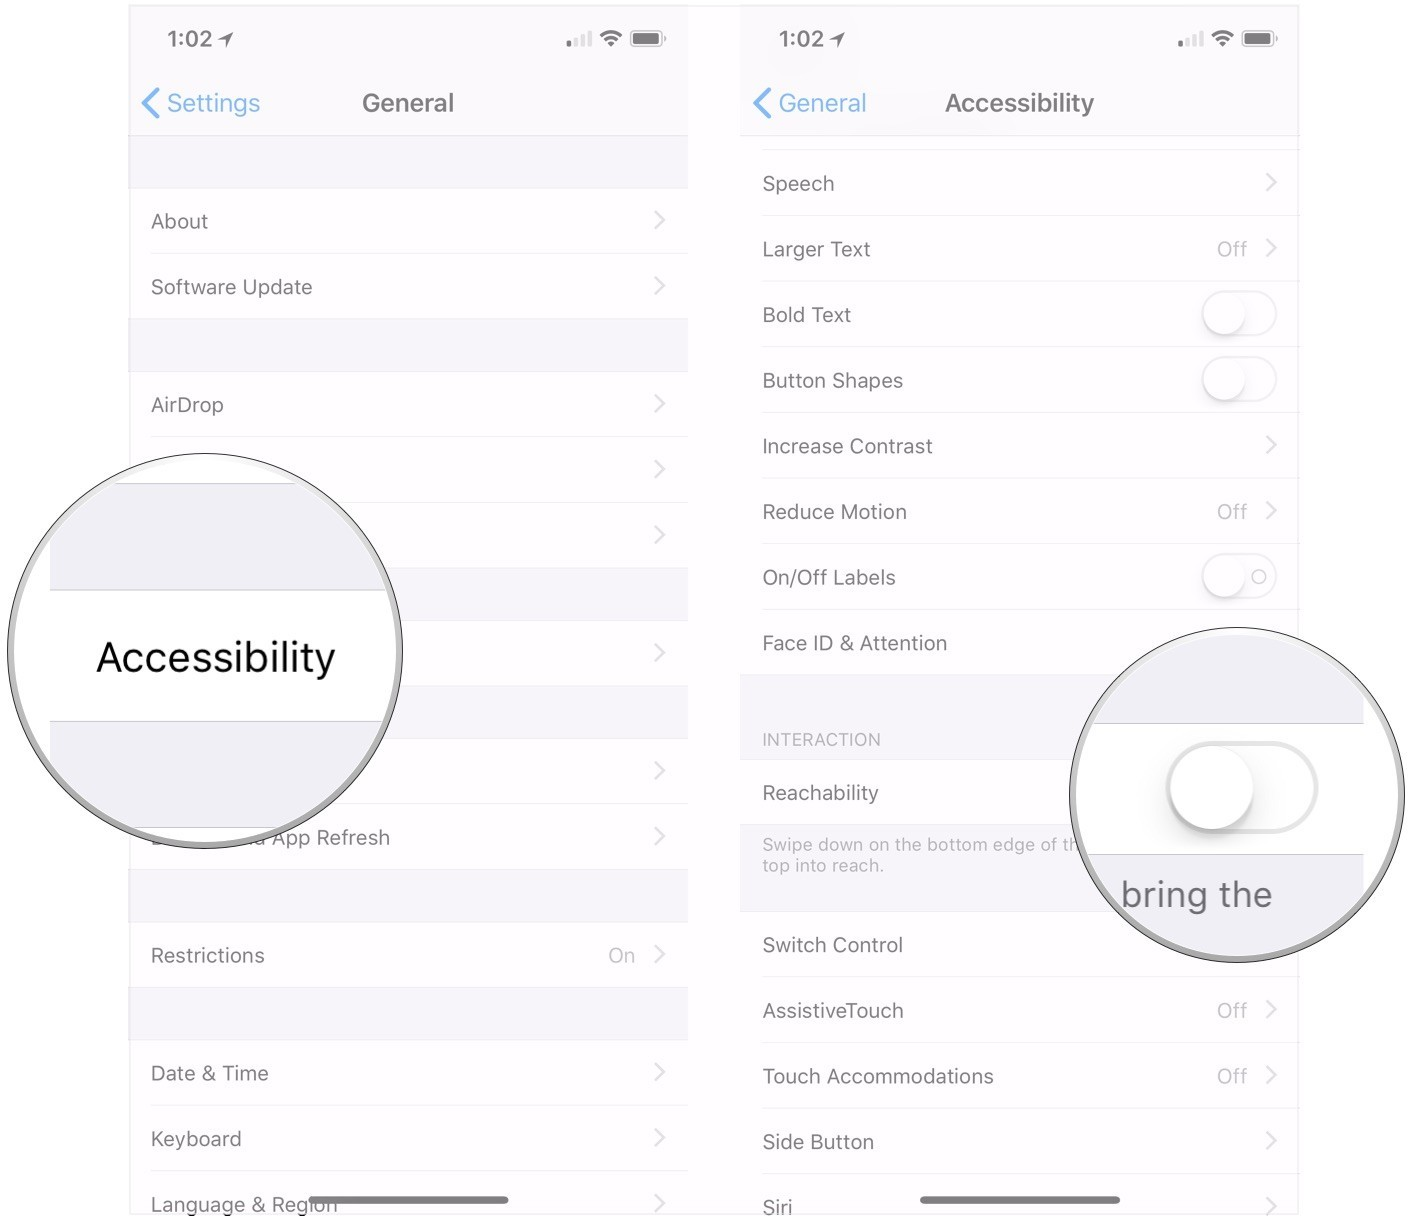 Tap Accessibility, turn Reachability On